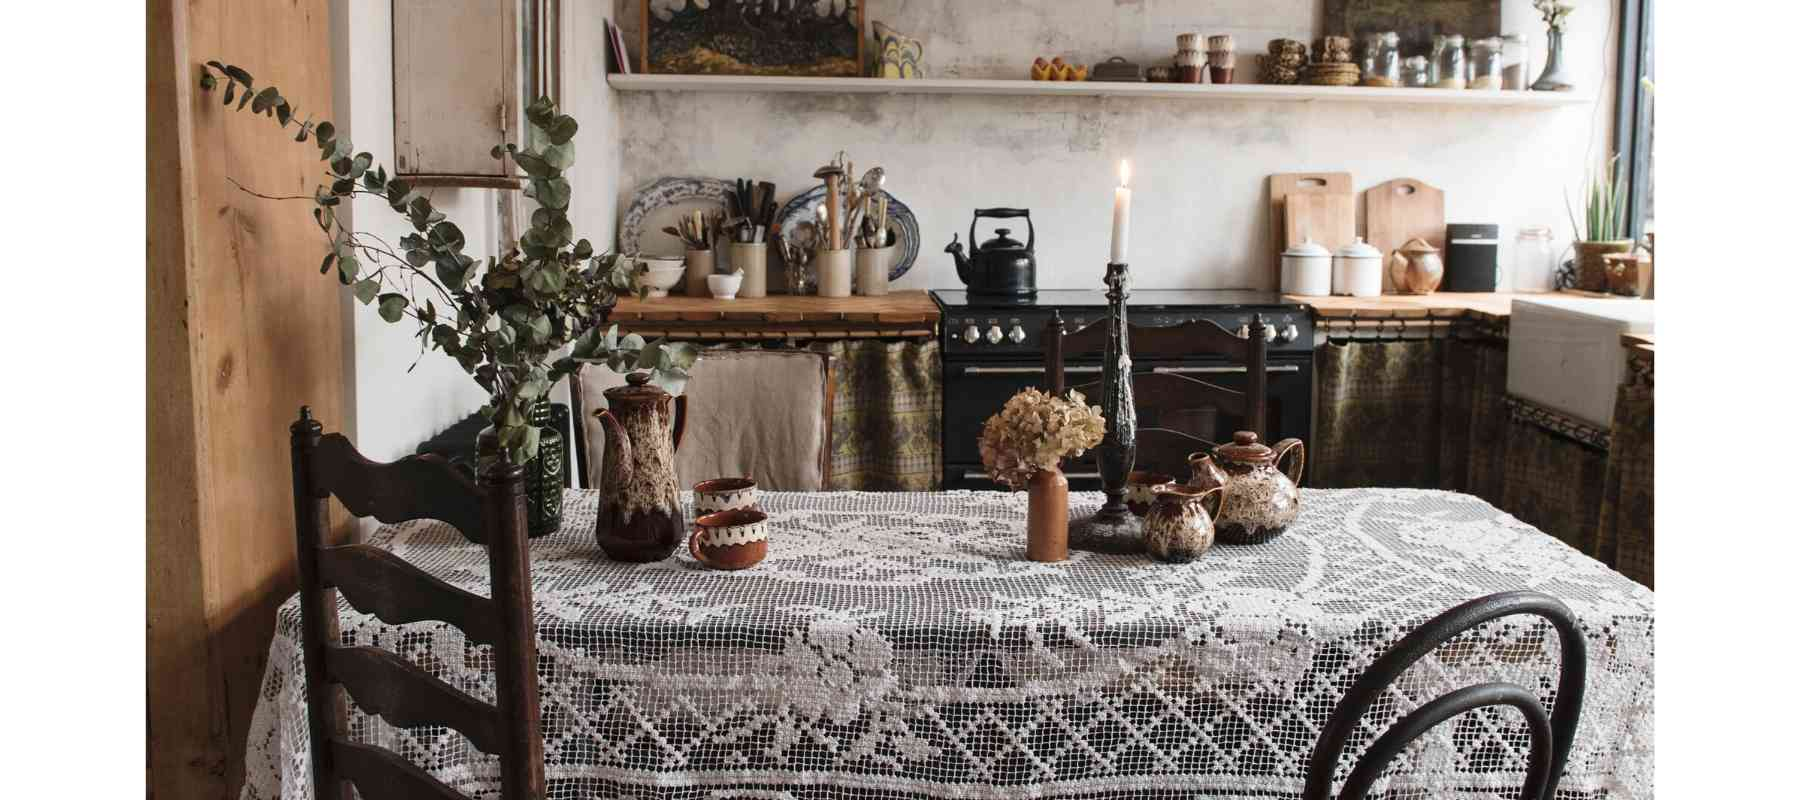 Wooden kitchen table with lace tablecloth